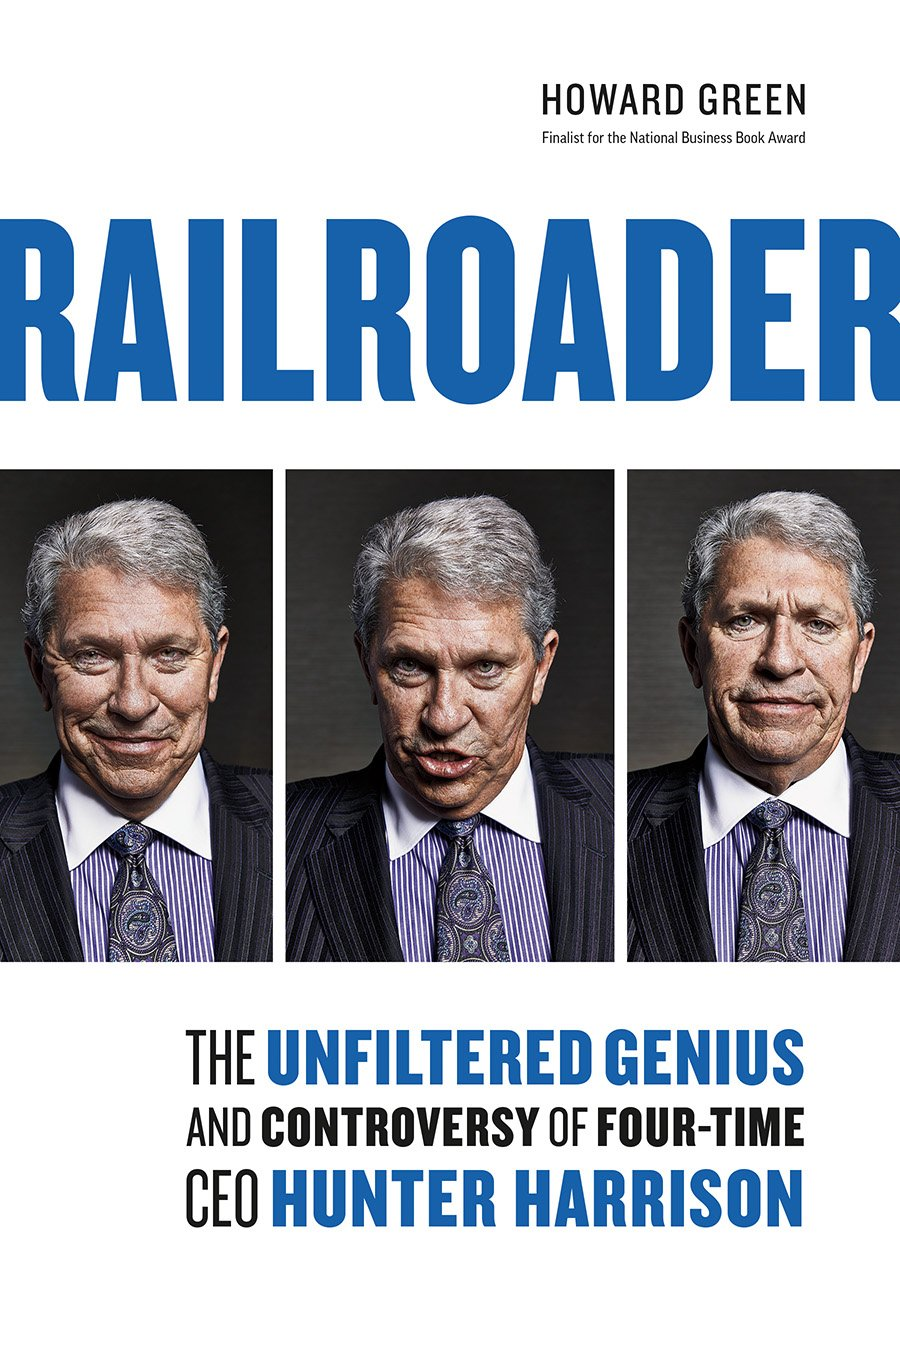 The Unfiltered Genius and Controversy of Four-Time CEO Hunter Harrison Railroader